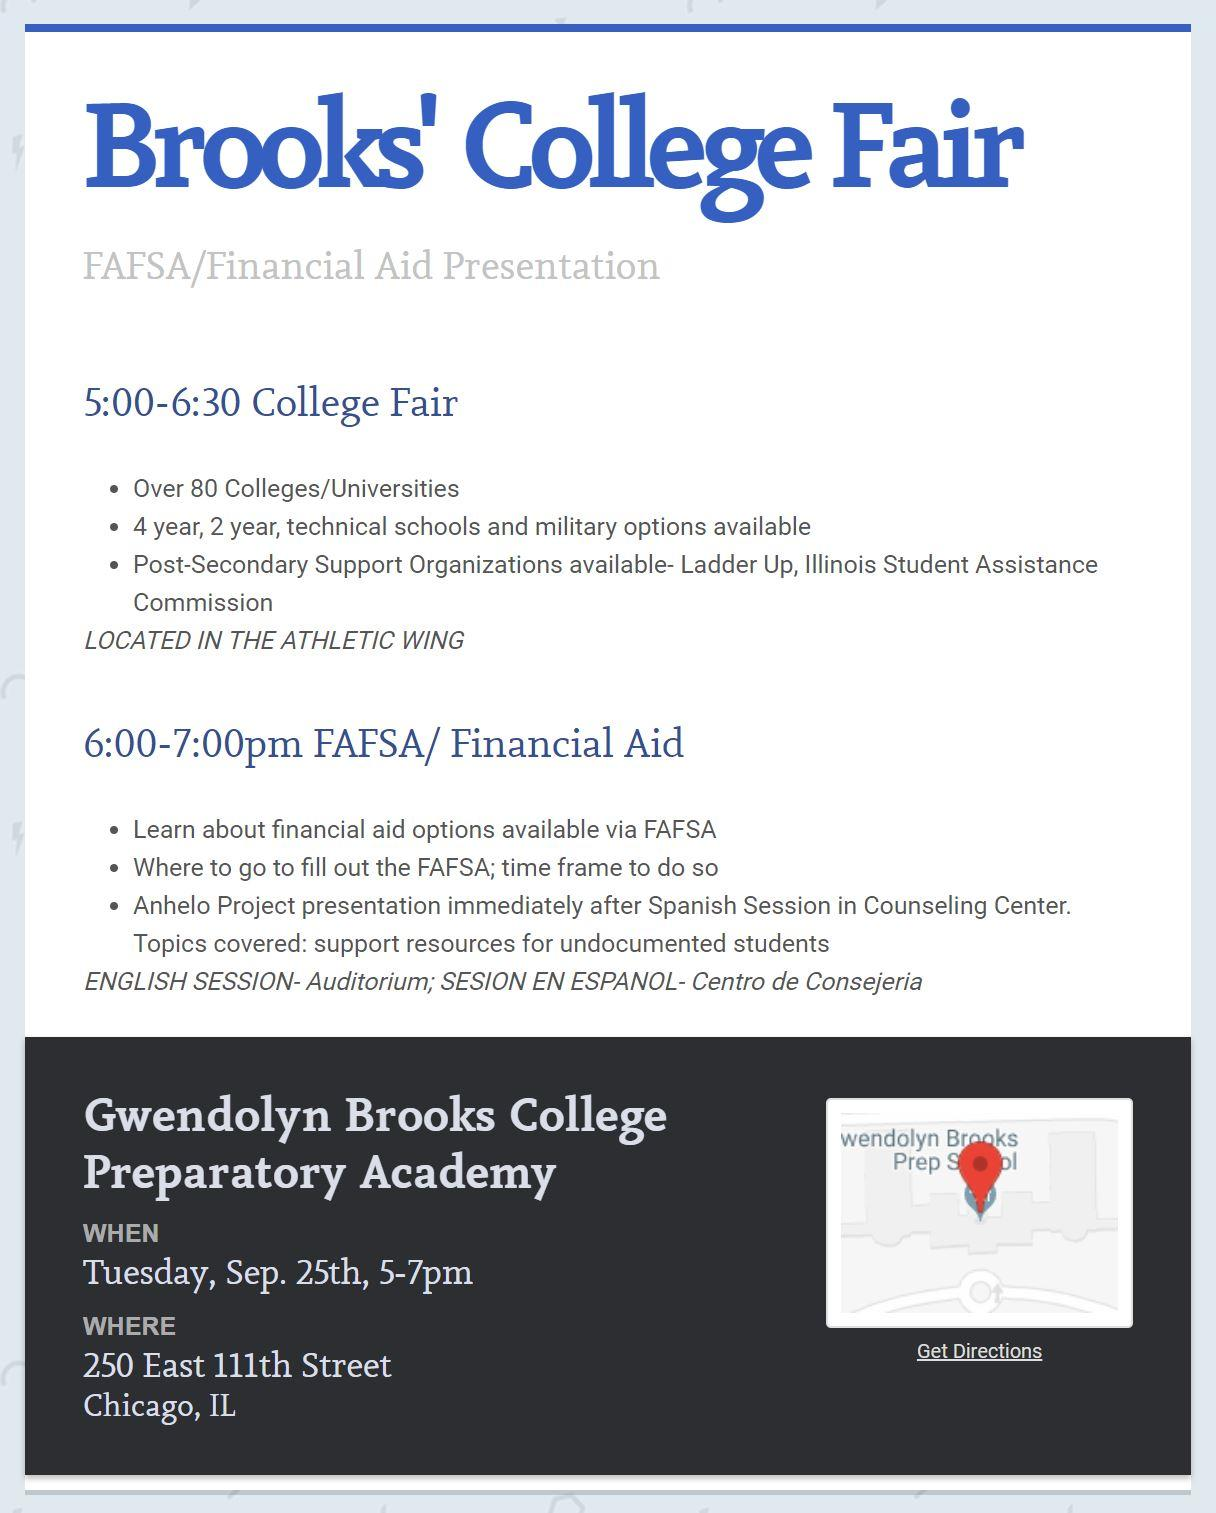 Brooks College Fair Evening! | Gwendolyn Brooks College Prepatory ...